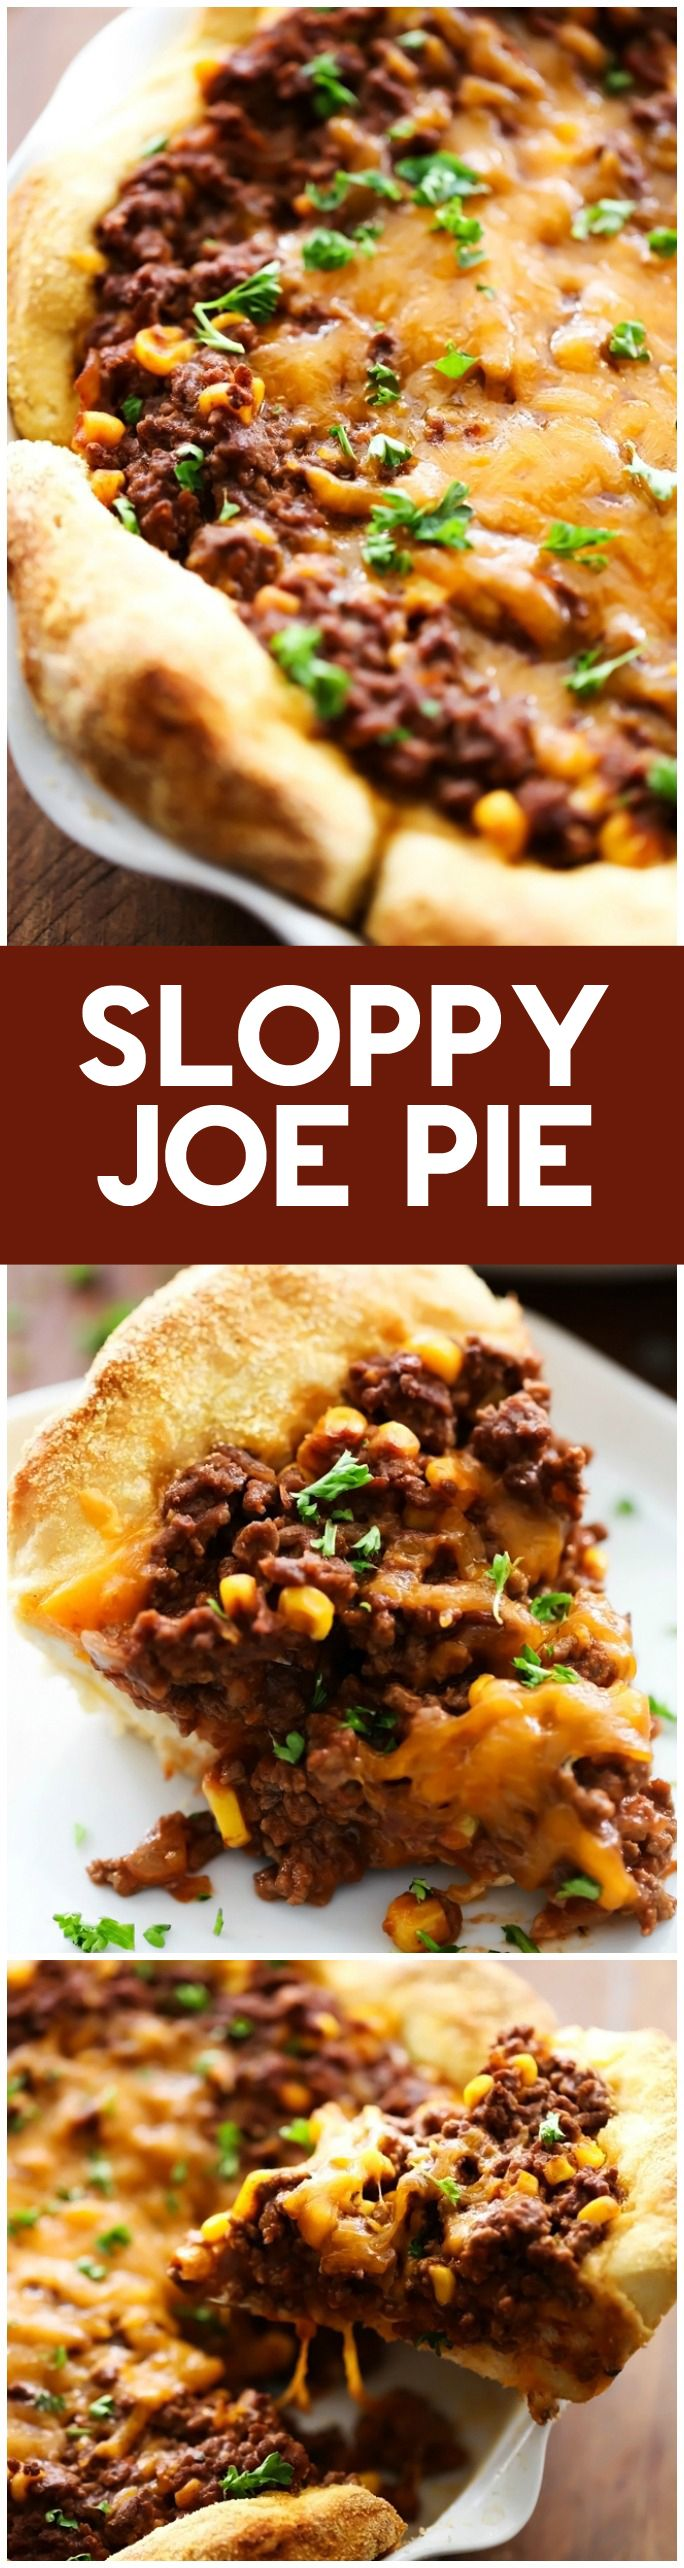 Sloppy Joe Pie - Everything you love about sloppy joes baked into a delicious pie that is packed with flavor and super simple to make! This will quickly become a new family favorite!